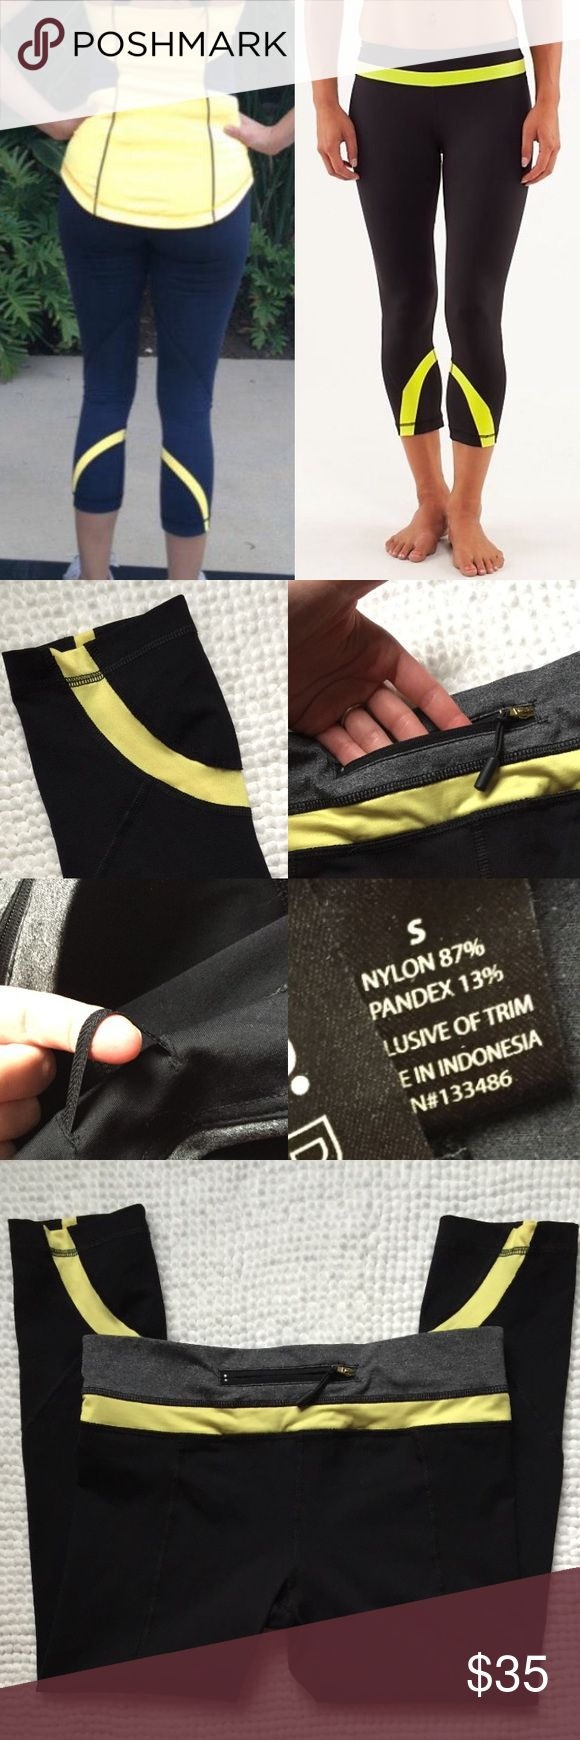 💕Yoga Inspire Crop Black Yellow Small like New 💕 Like new Lululemon inspire crop inspired crops! Size small which is equivalent to a size 4 in lululemon. Stock photos shows exact fit and pics 2-4 show the exact crop! Brand is 90 degrees. Lovely design that still high quality at half the price!!🚫trades 90 degrees Pants Ankle & Cropped